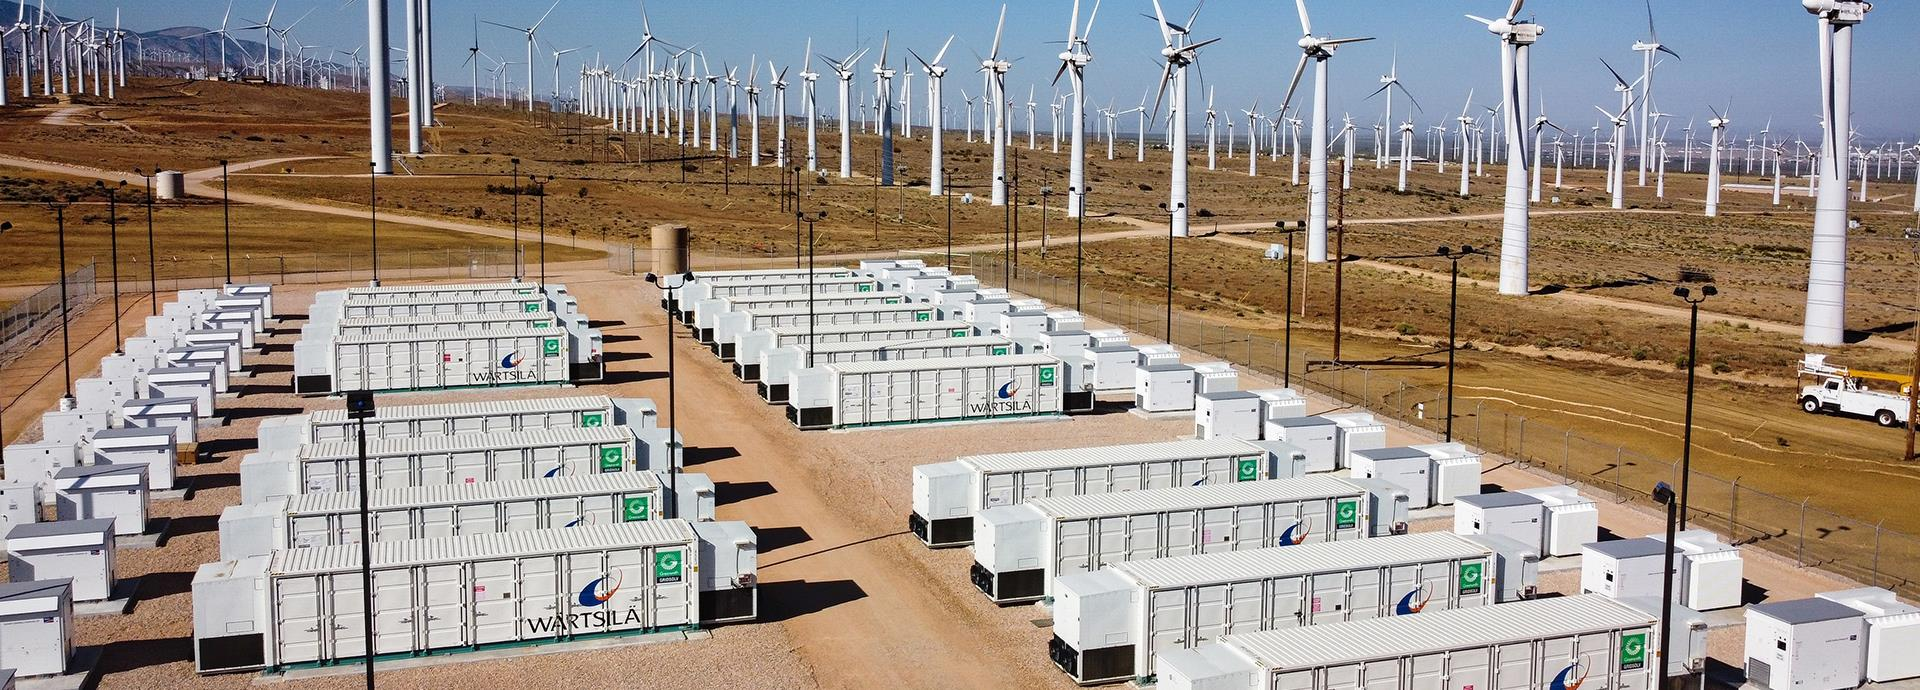 Integrating Energy Storage Solutions